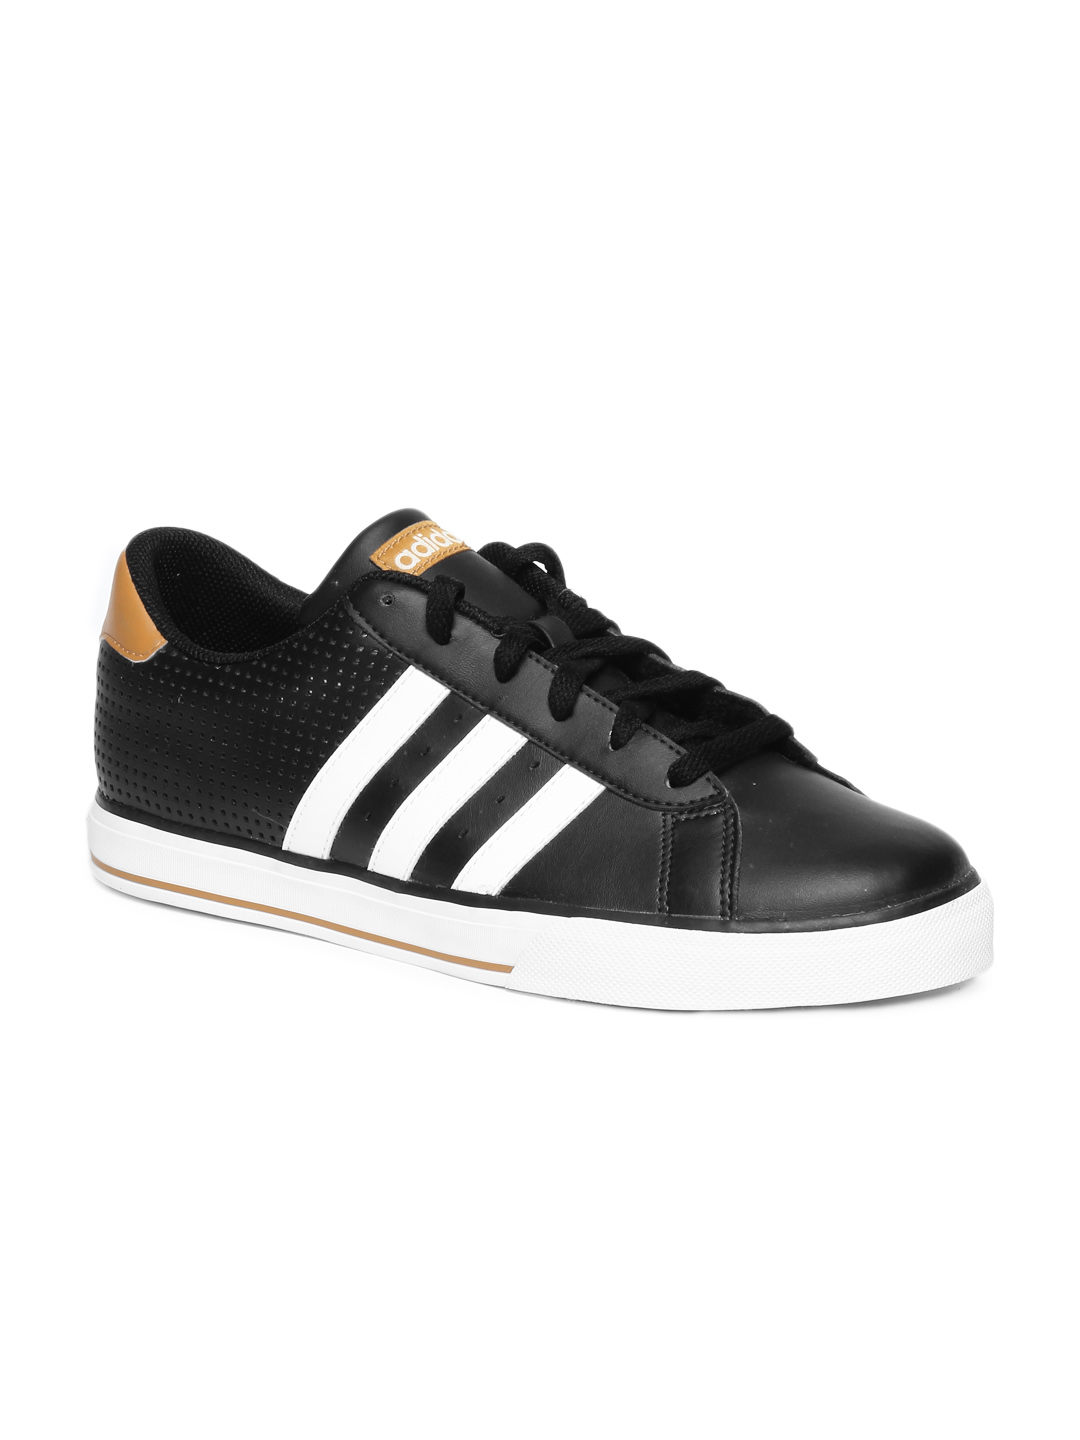 Adidas Men Black Casual Shoes